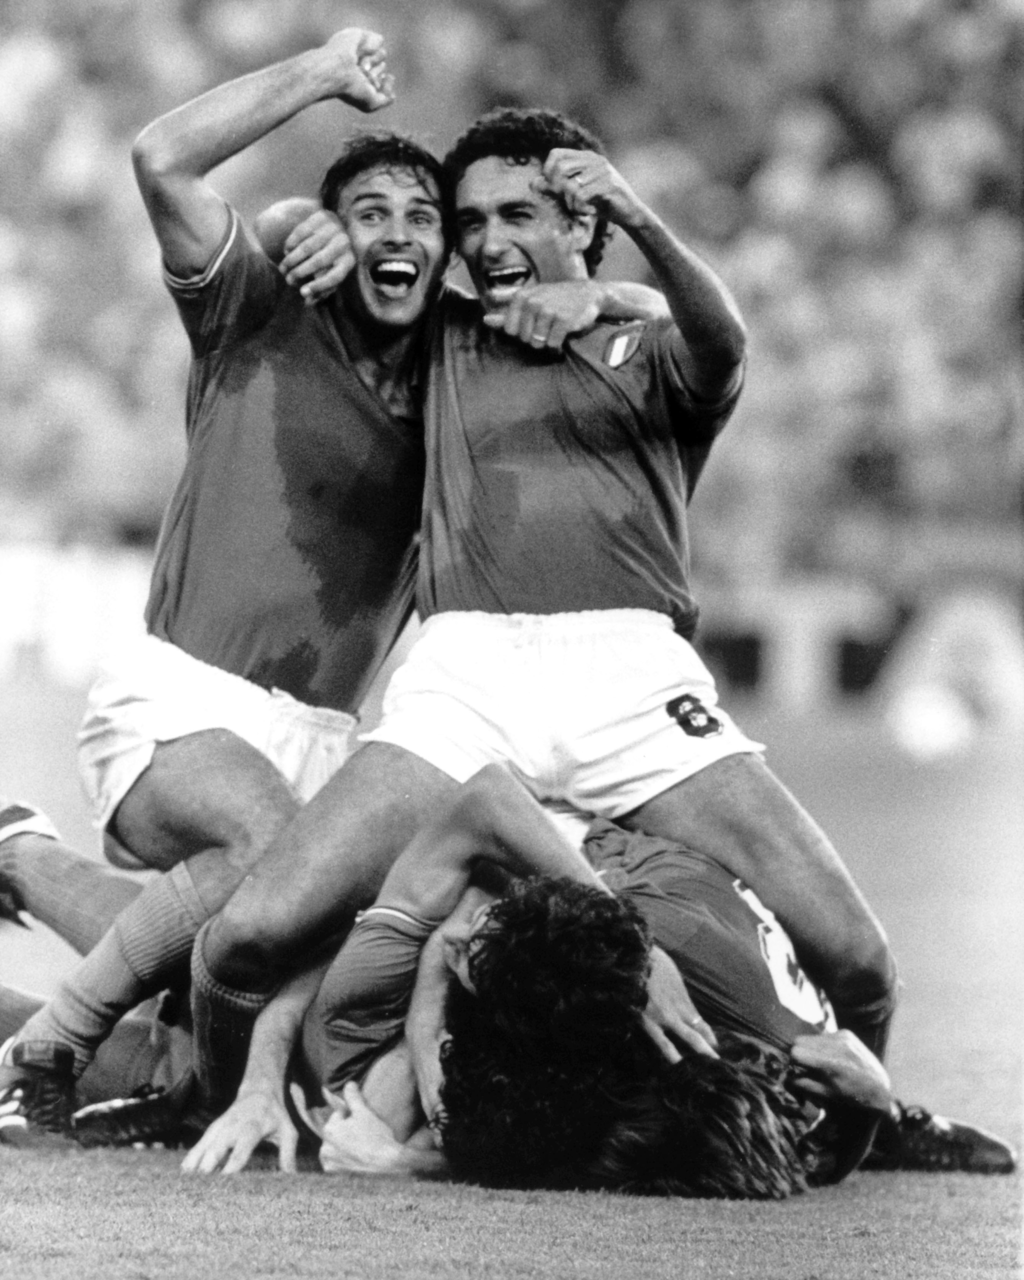 After Altobelli's goal in the 1982 World Cup final.